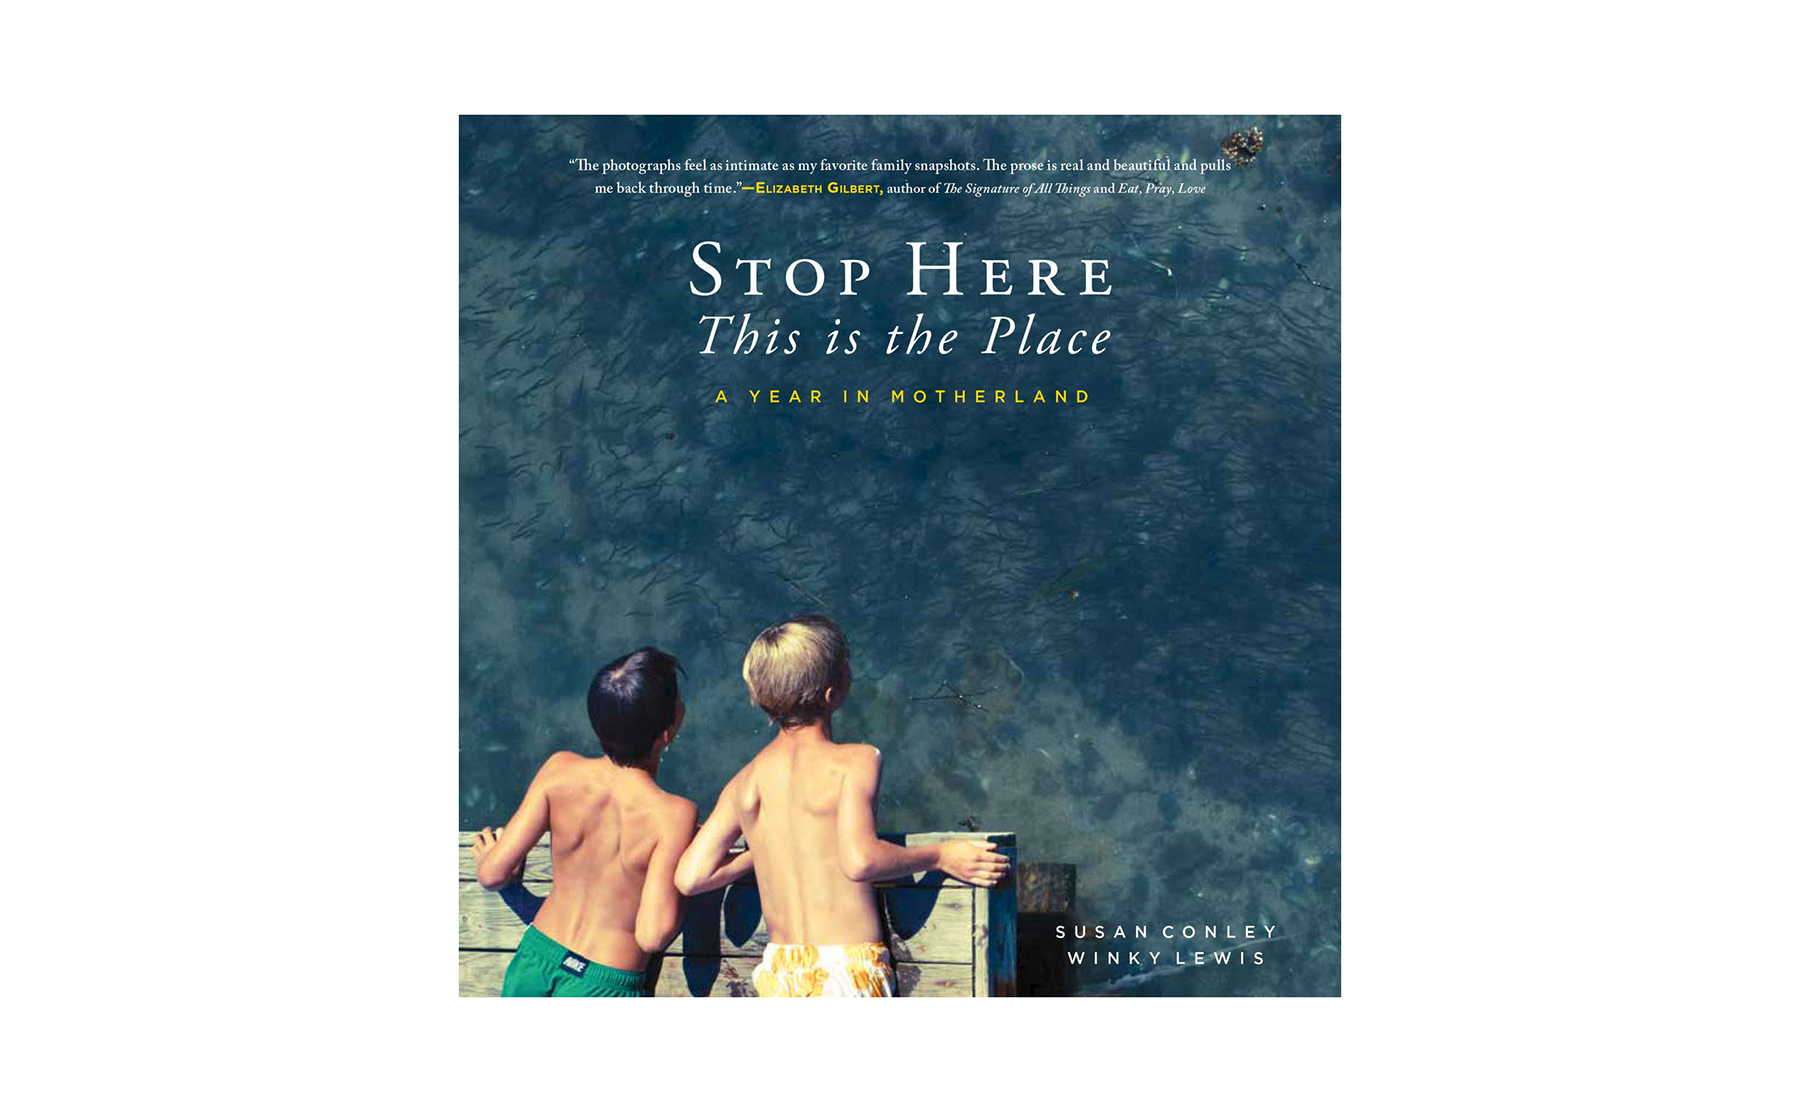 Stop Here, This Is the Place, by Susan Collins and Winky Lewis